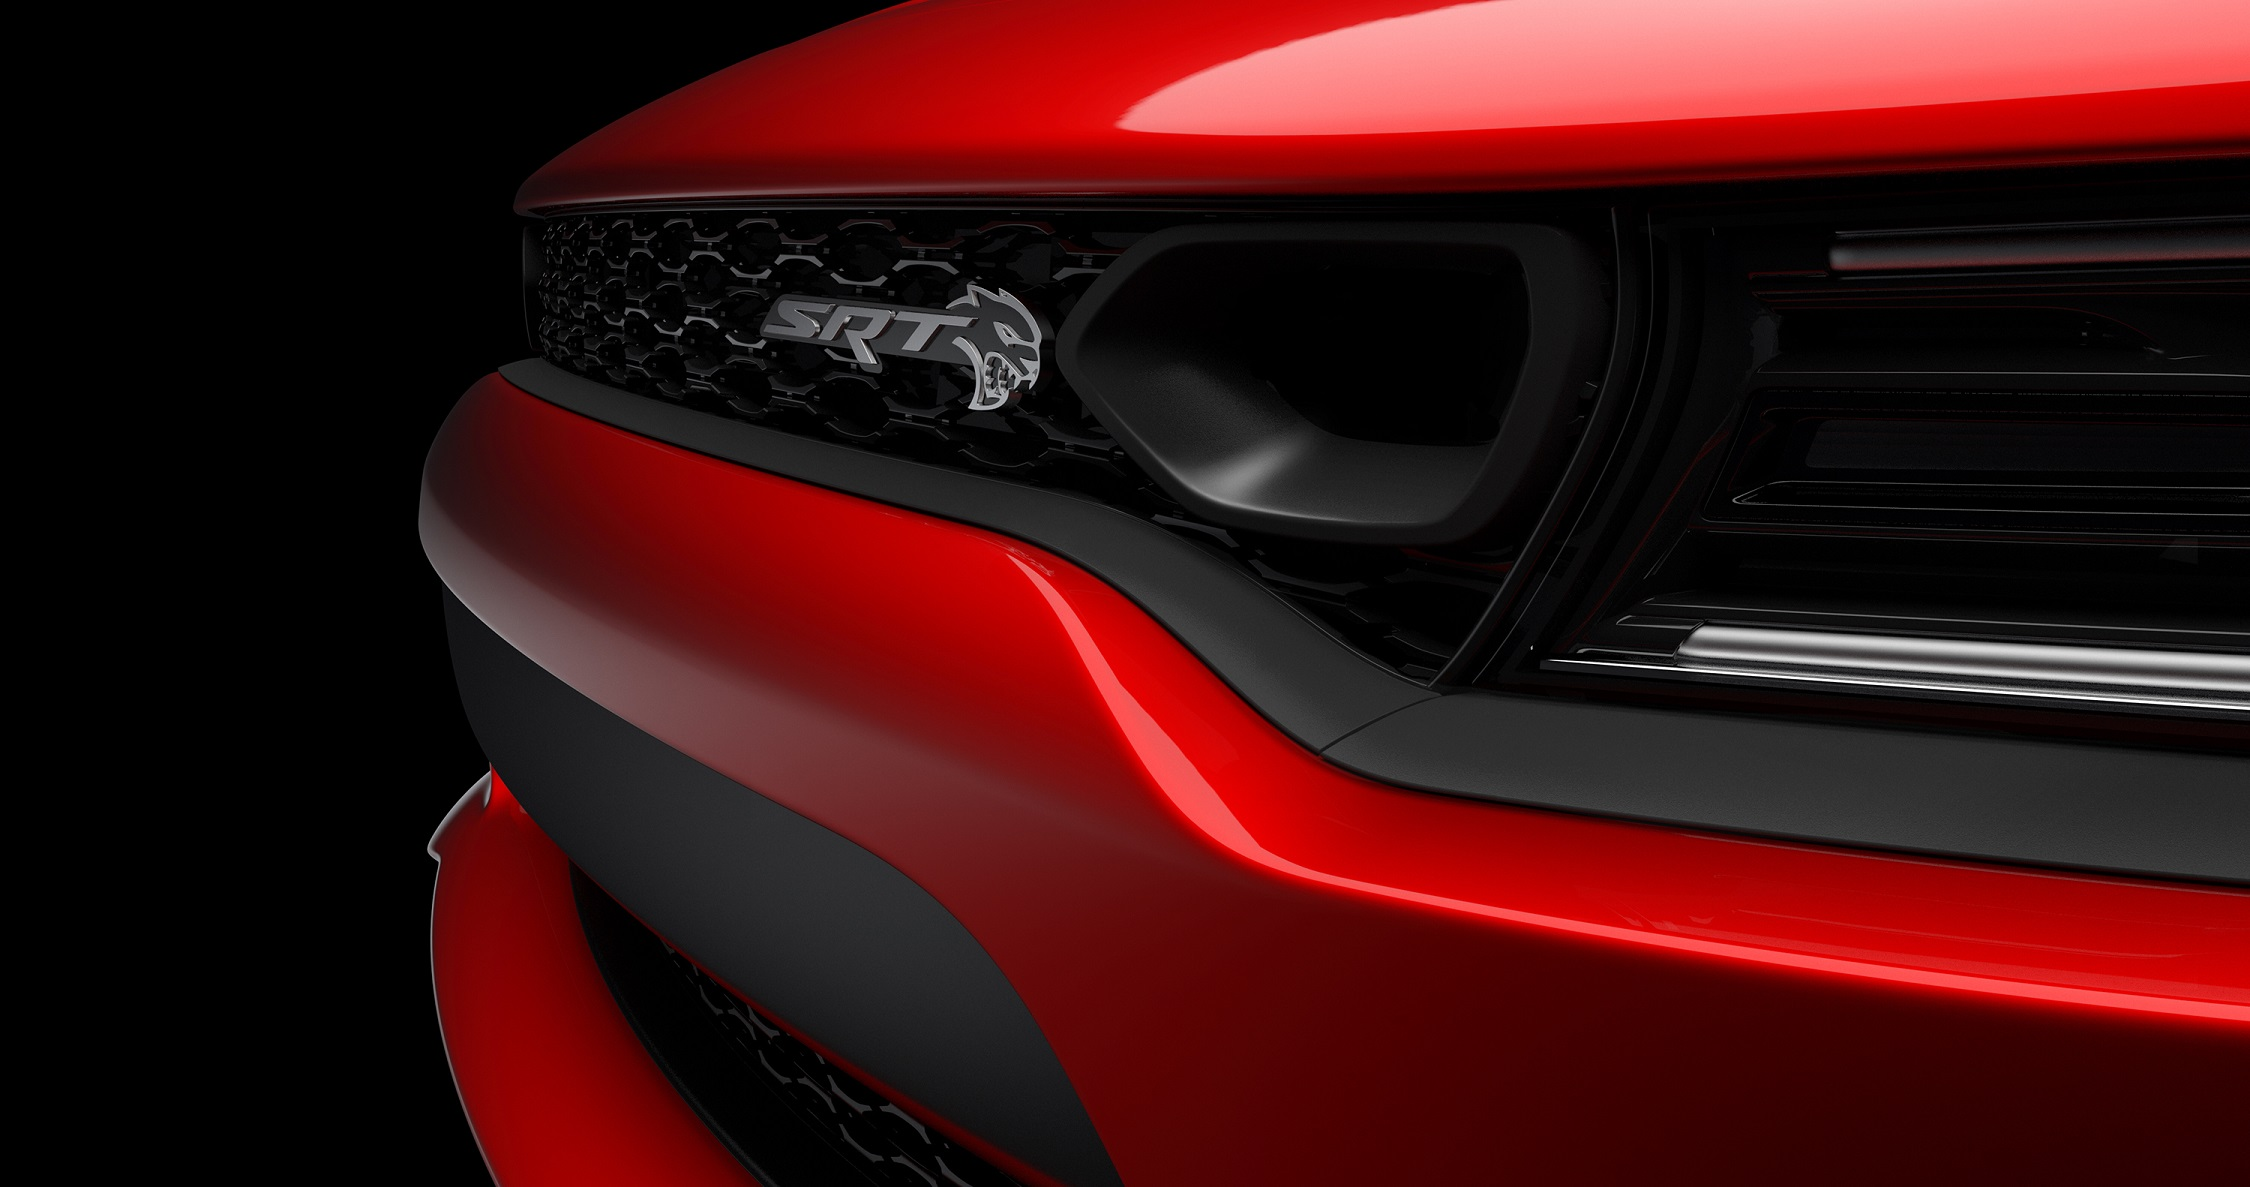 Dodge teases 2019 Charger Hellcat with updated grille thumbnail